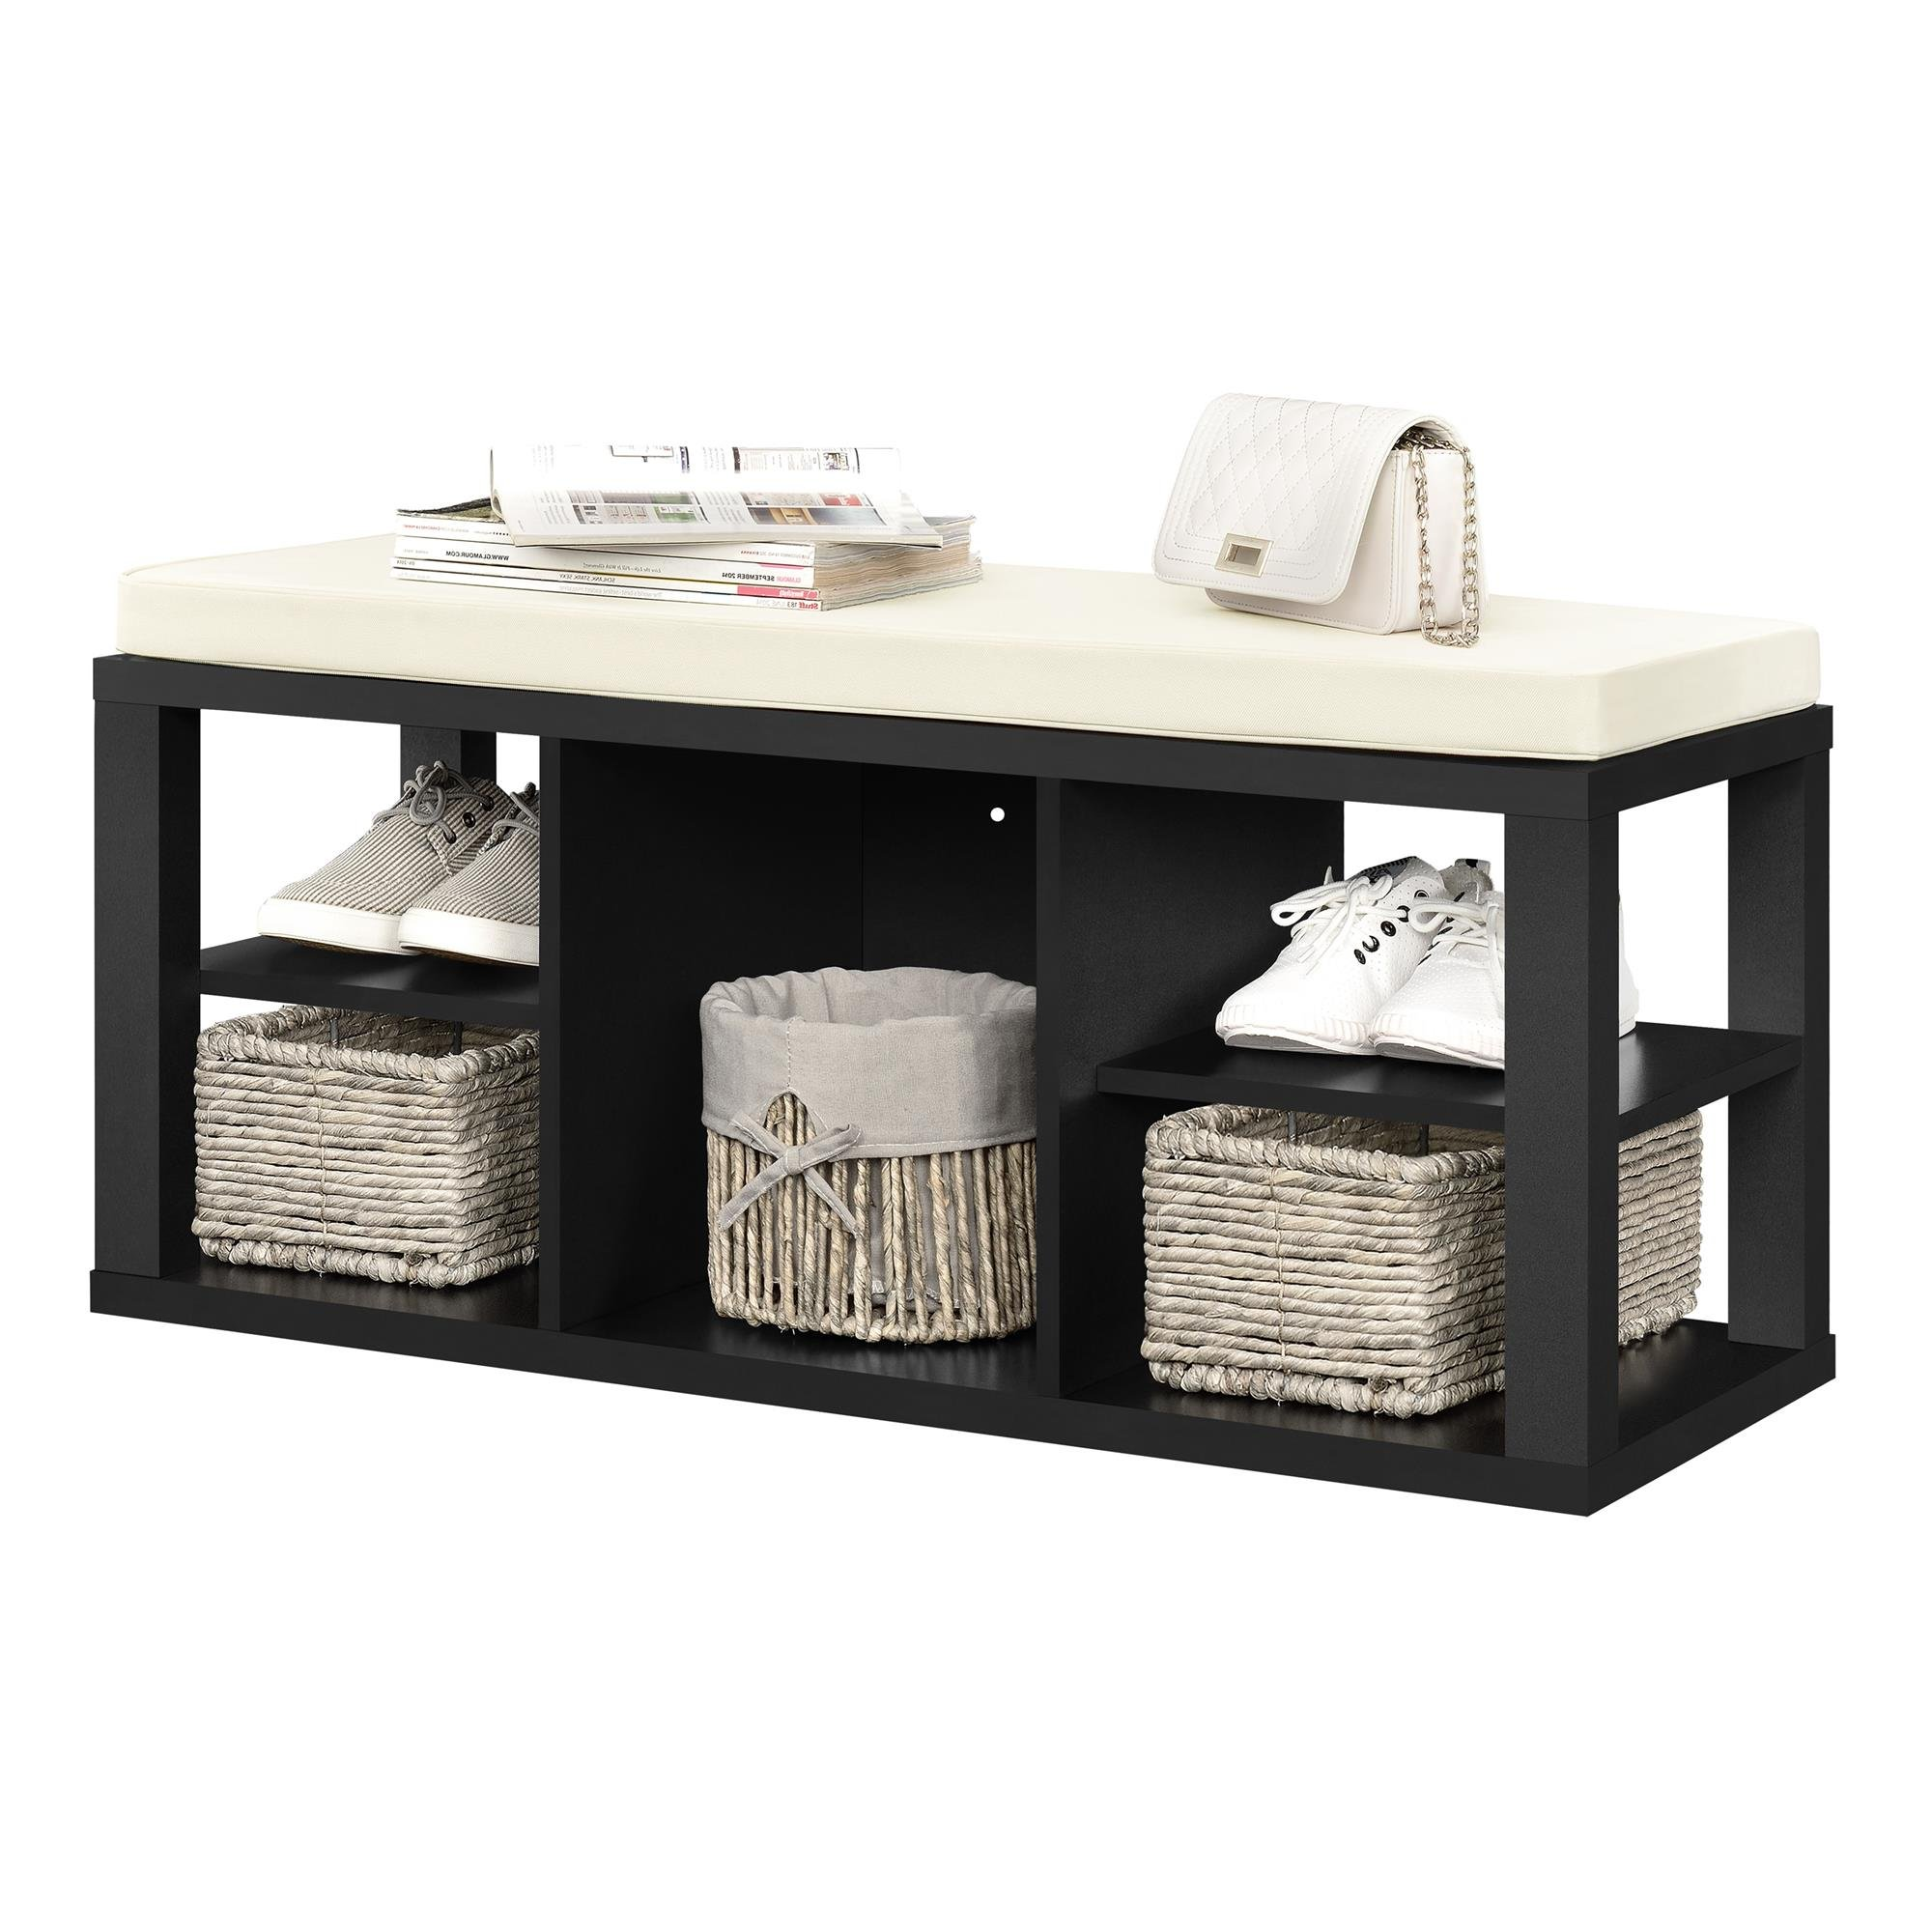 Ameriwood Home Parsons Storage Bench, Black by Ameriwood Home (Image #5)